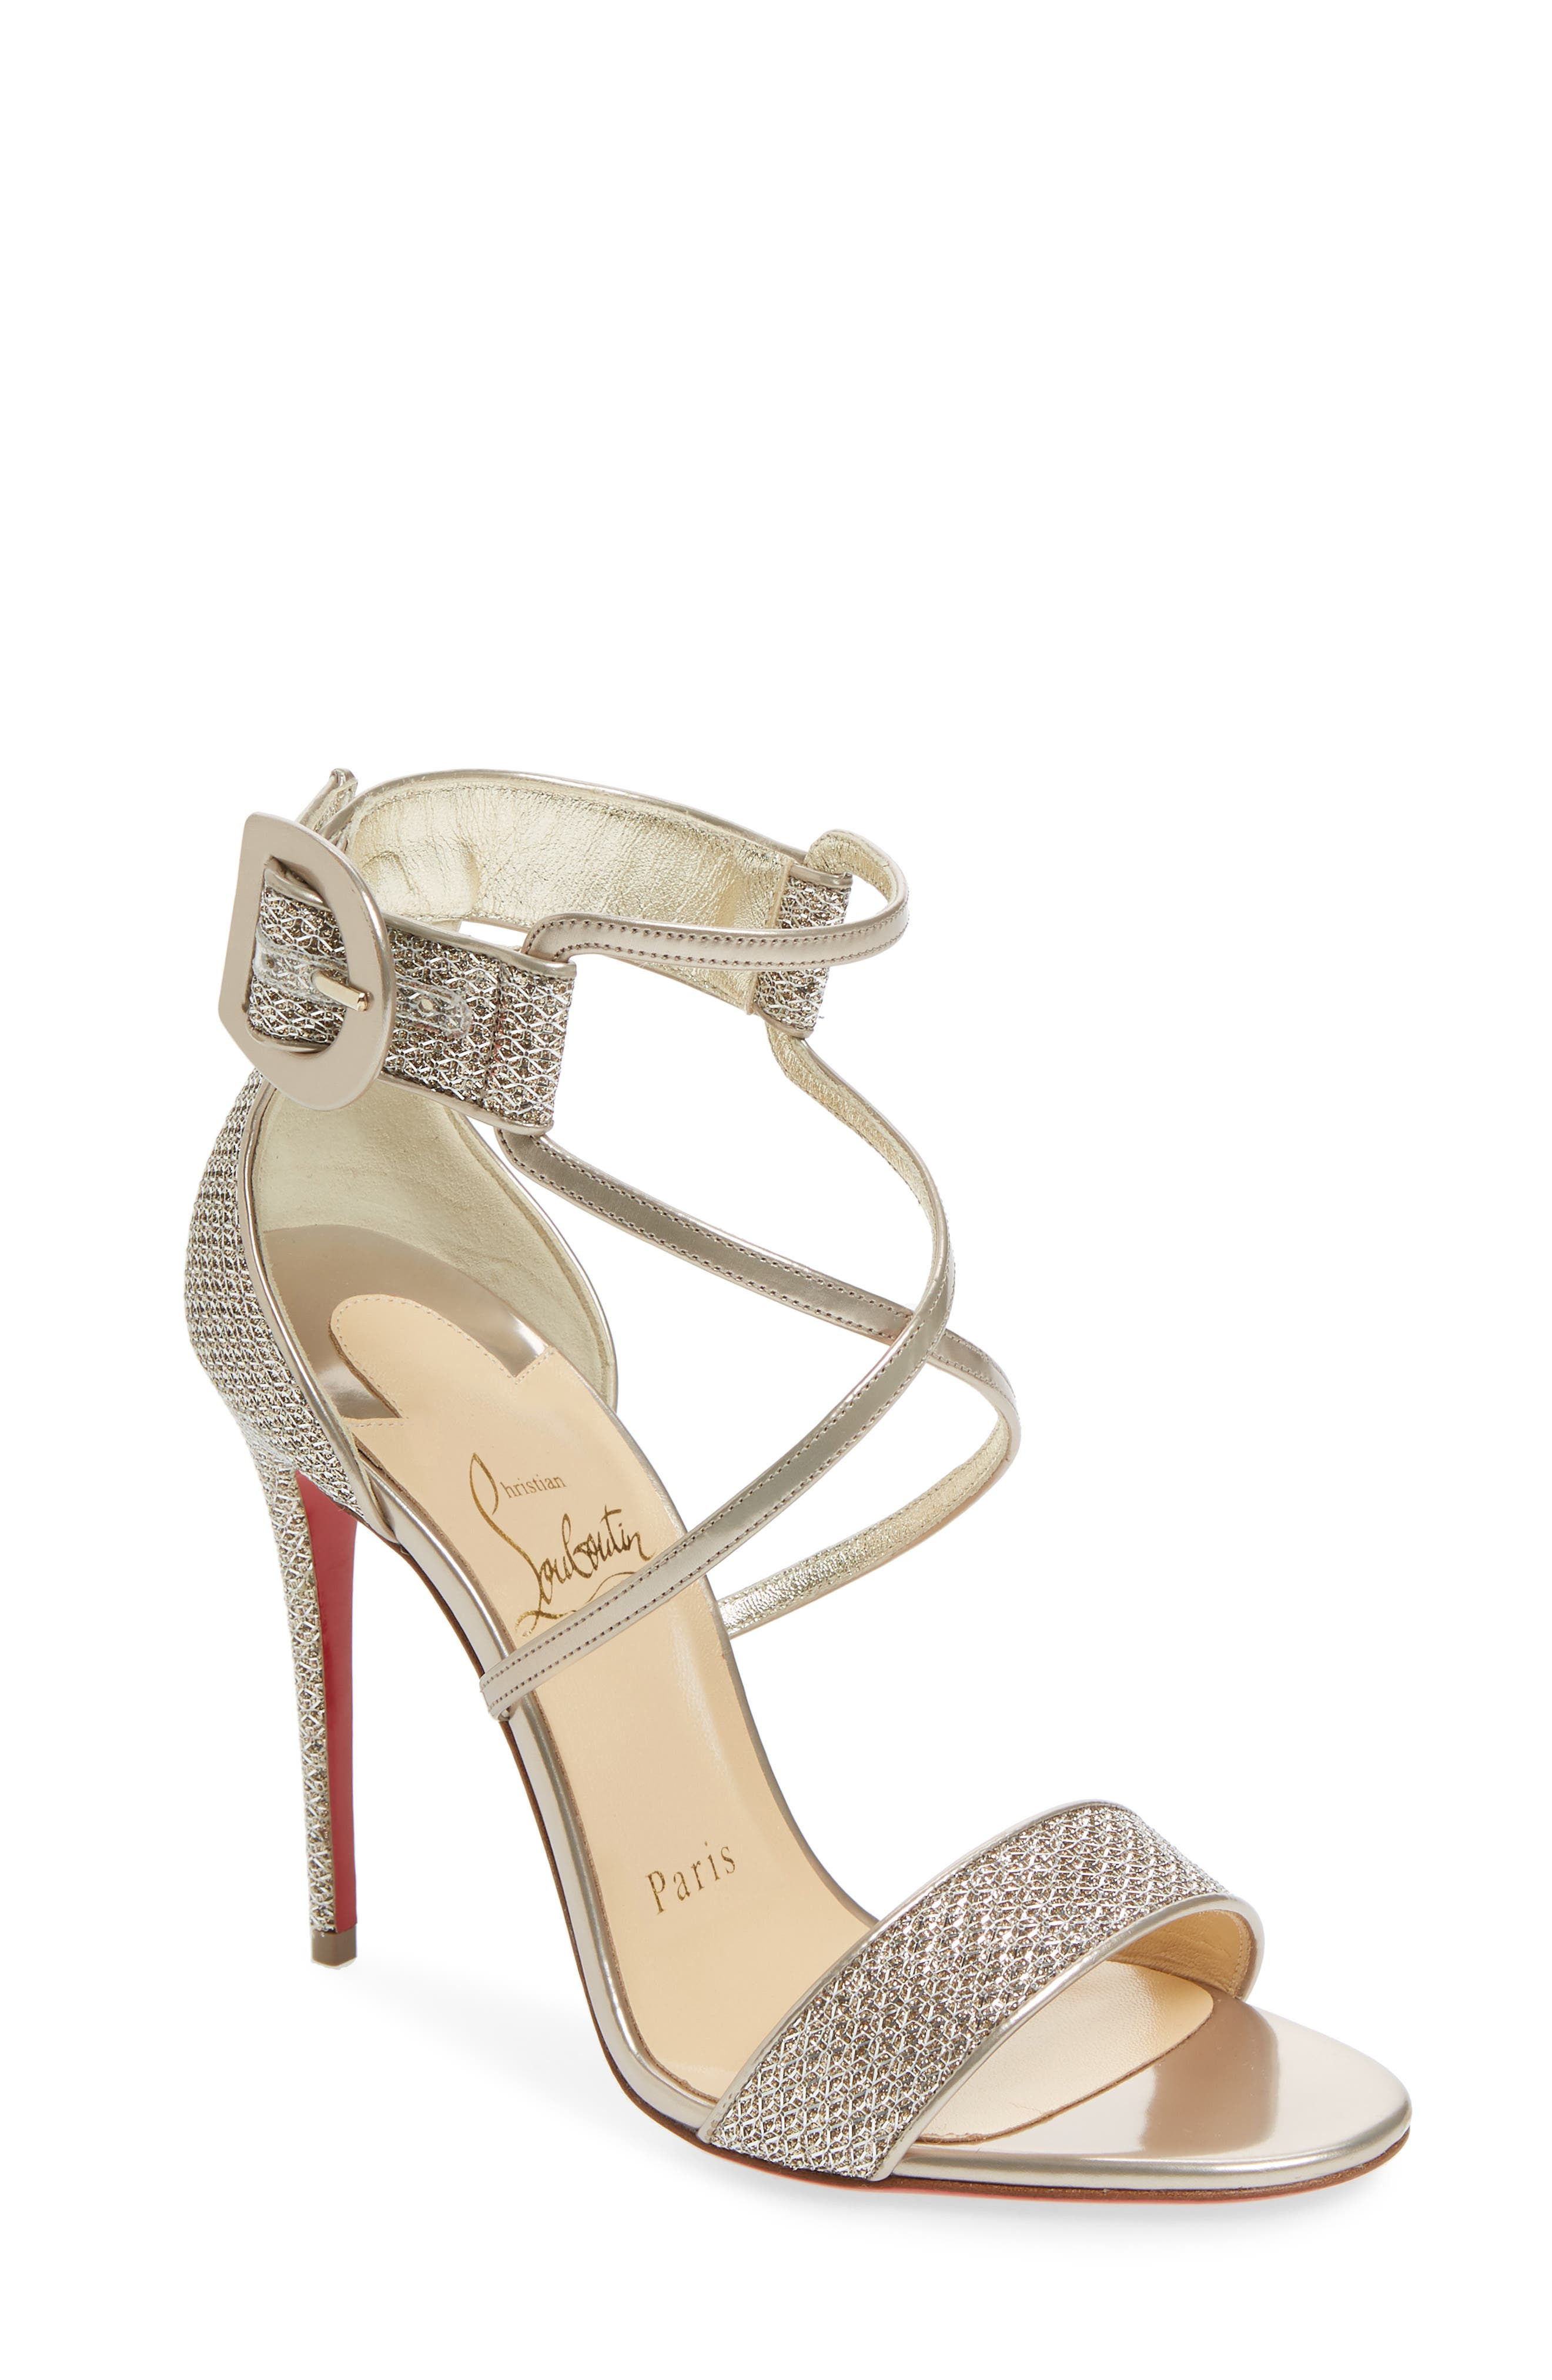 52169679f8c9 Christian Louboutin Choca Leather   Glitter Sandals In Colombe ...